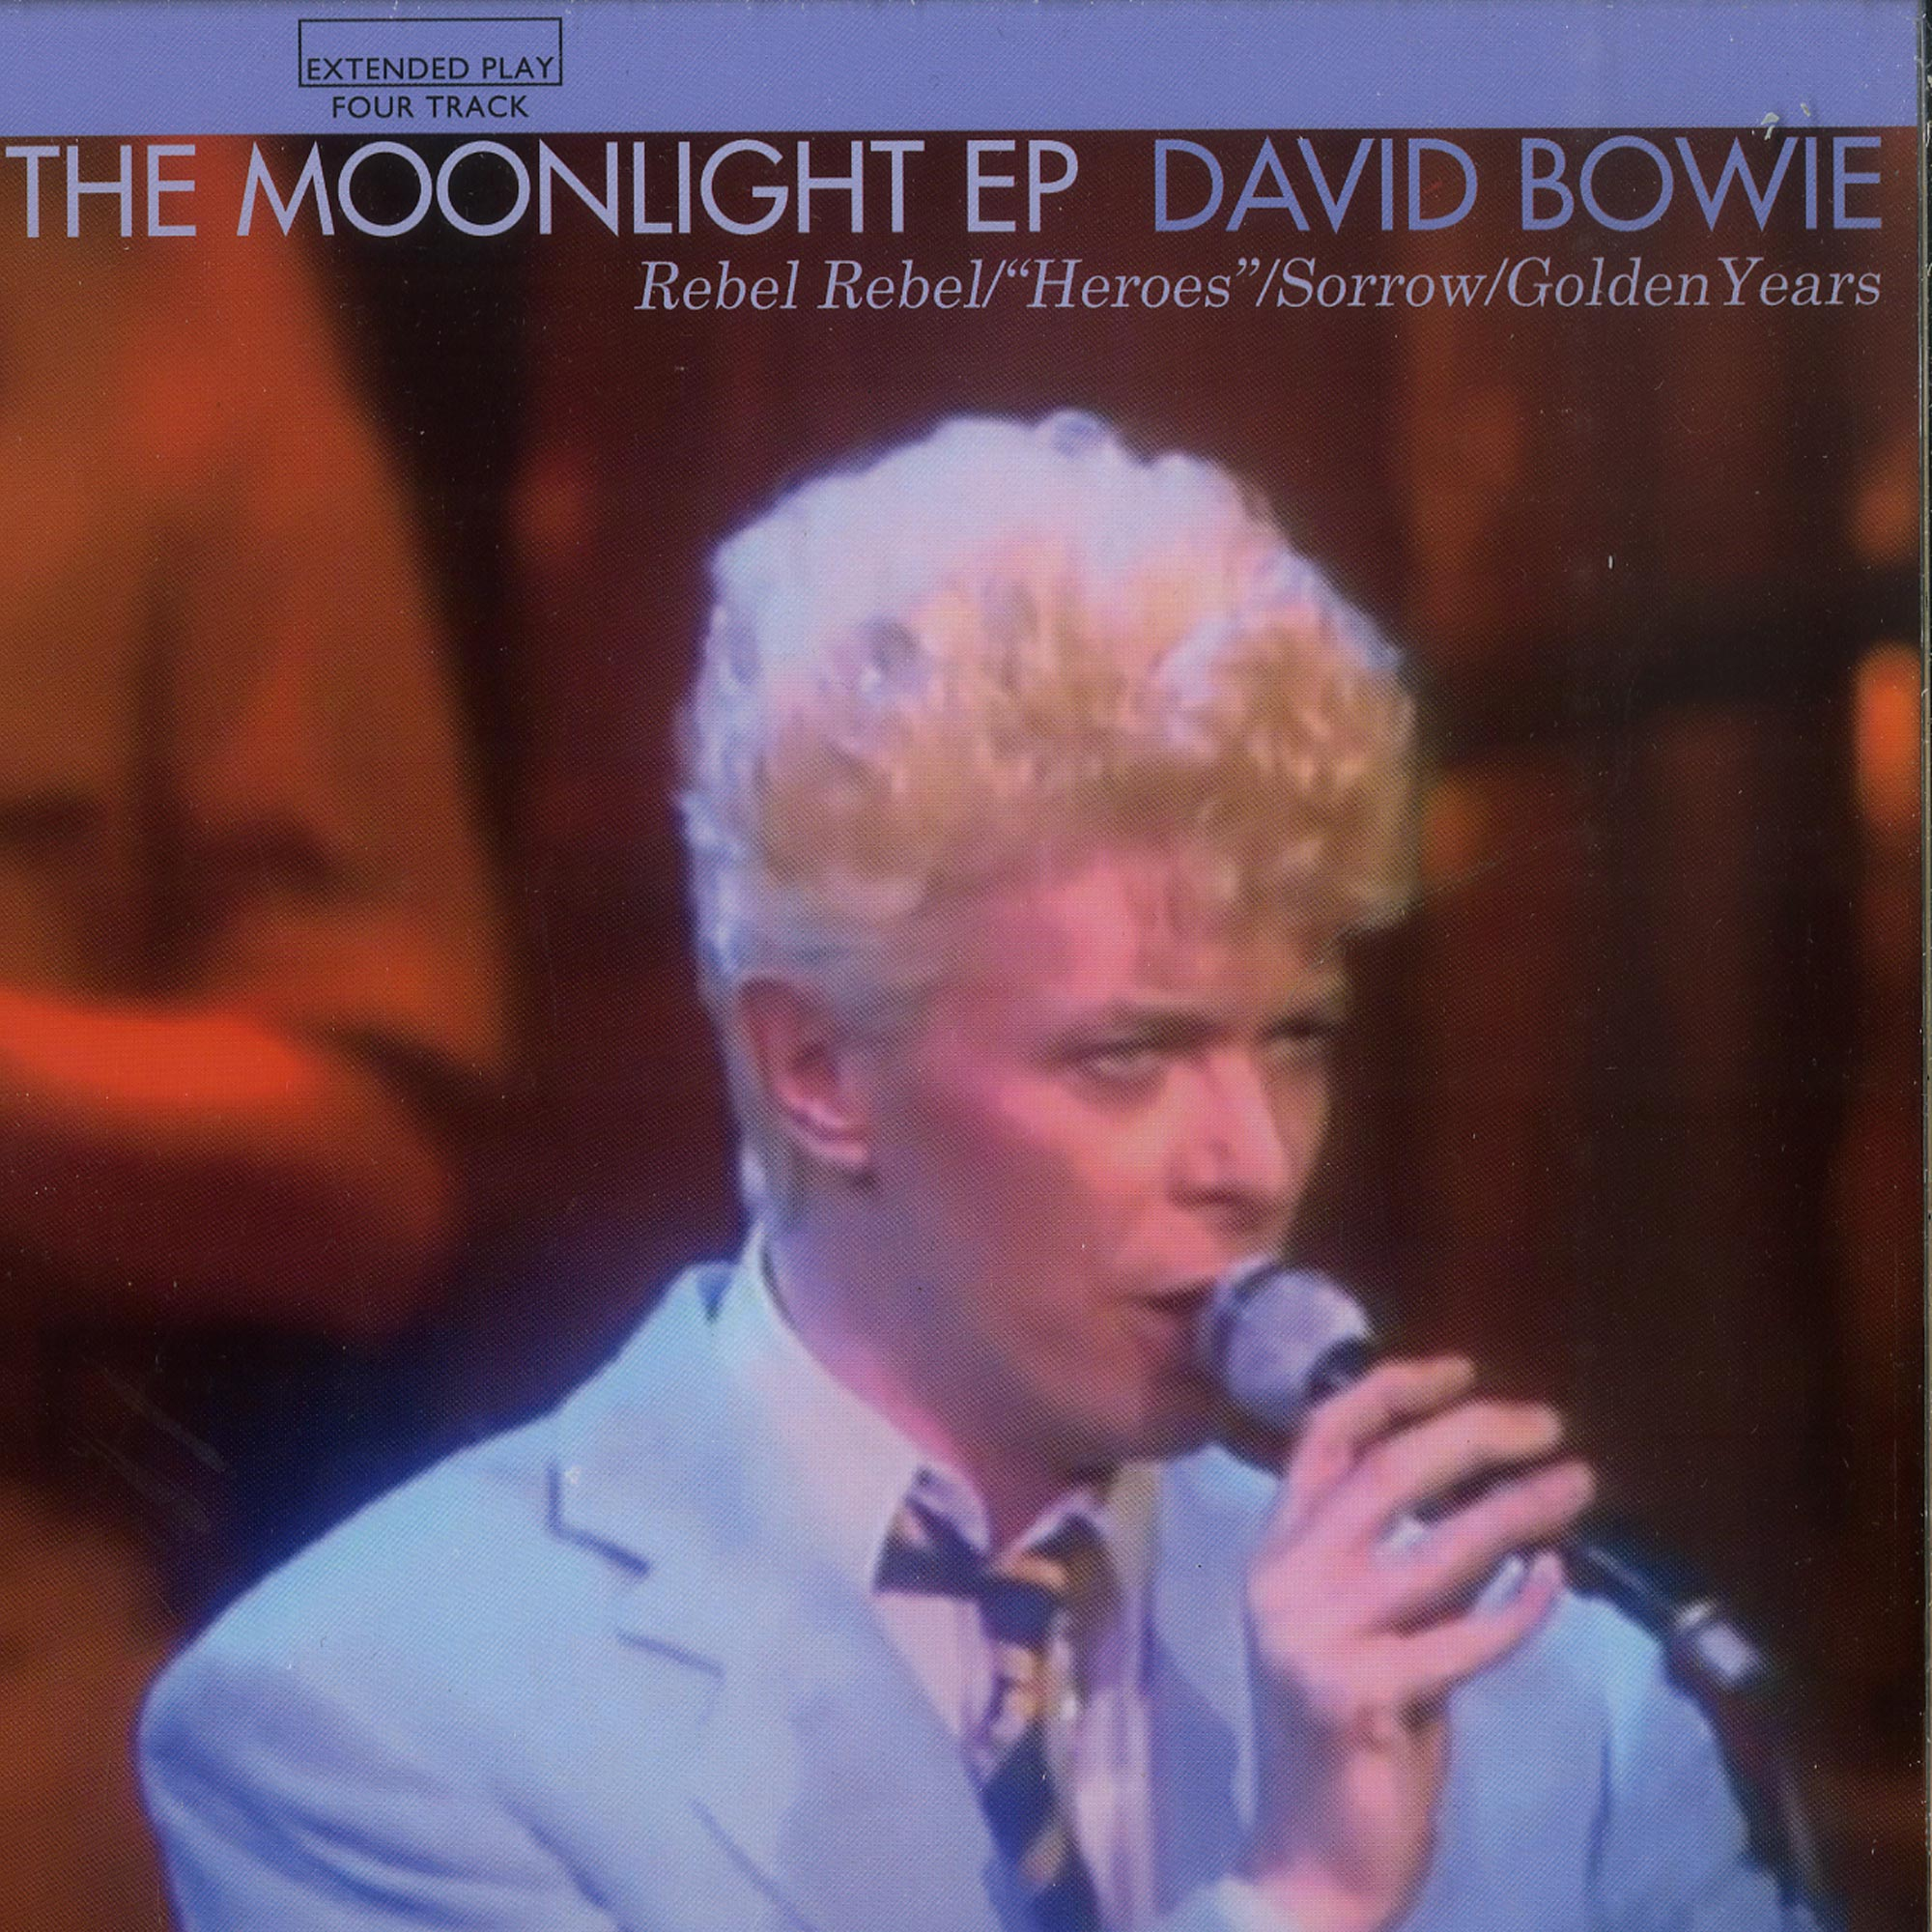 David Bowie - THE MOONLIGHT EP